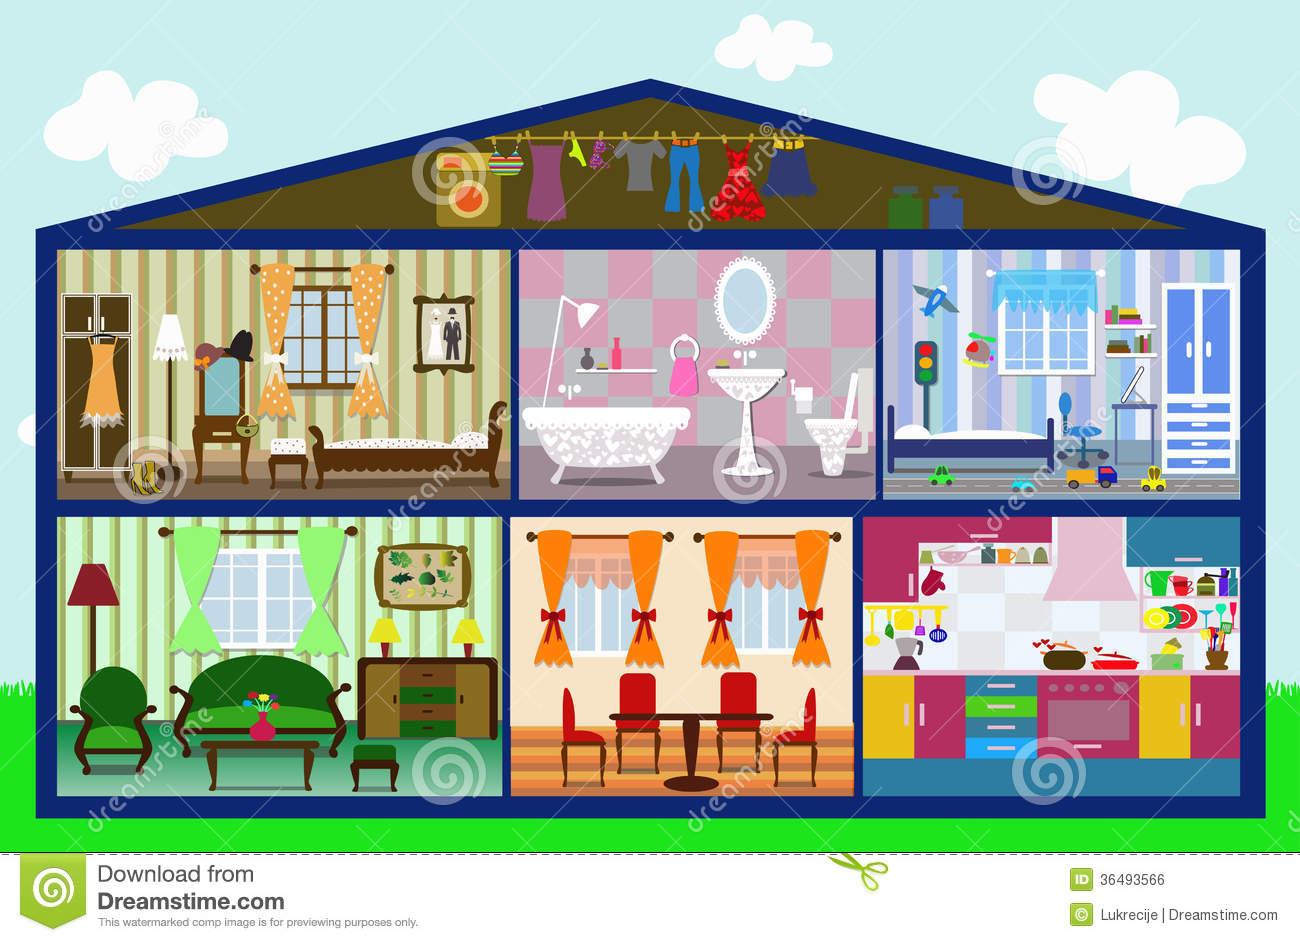 house side view clipart - photo #16